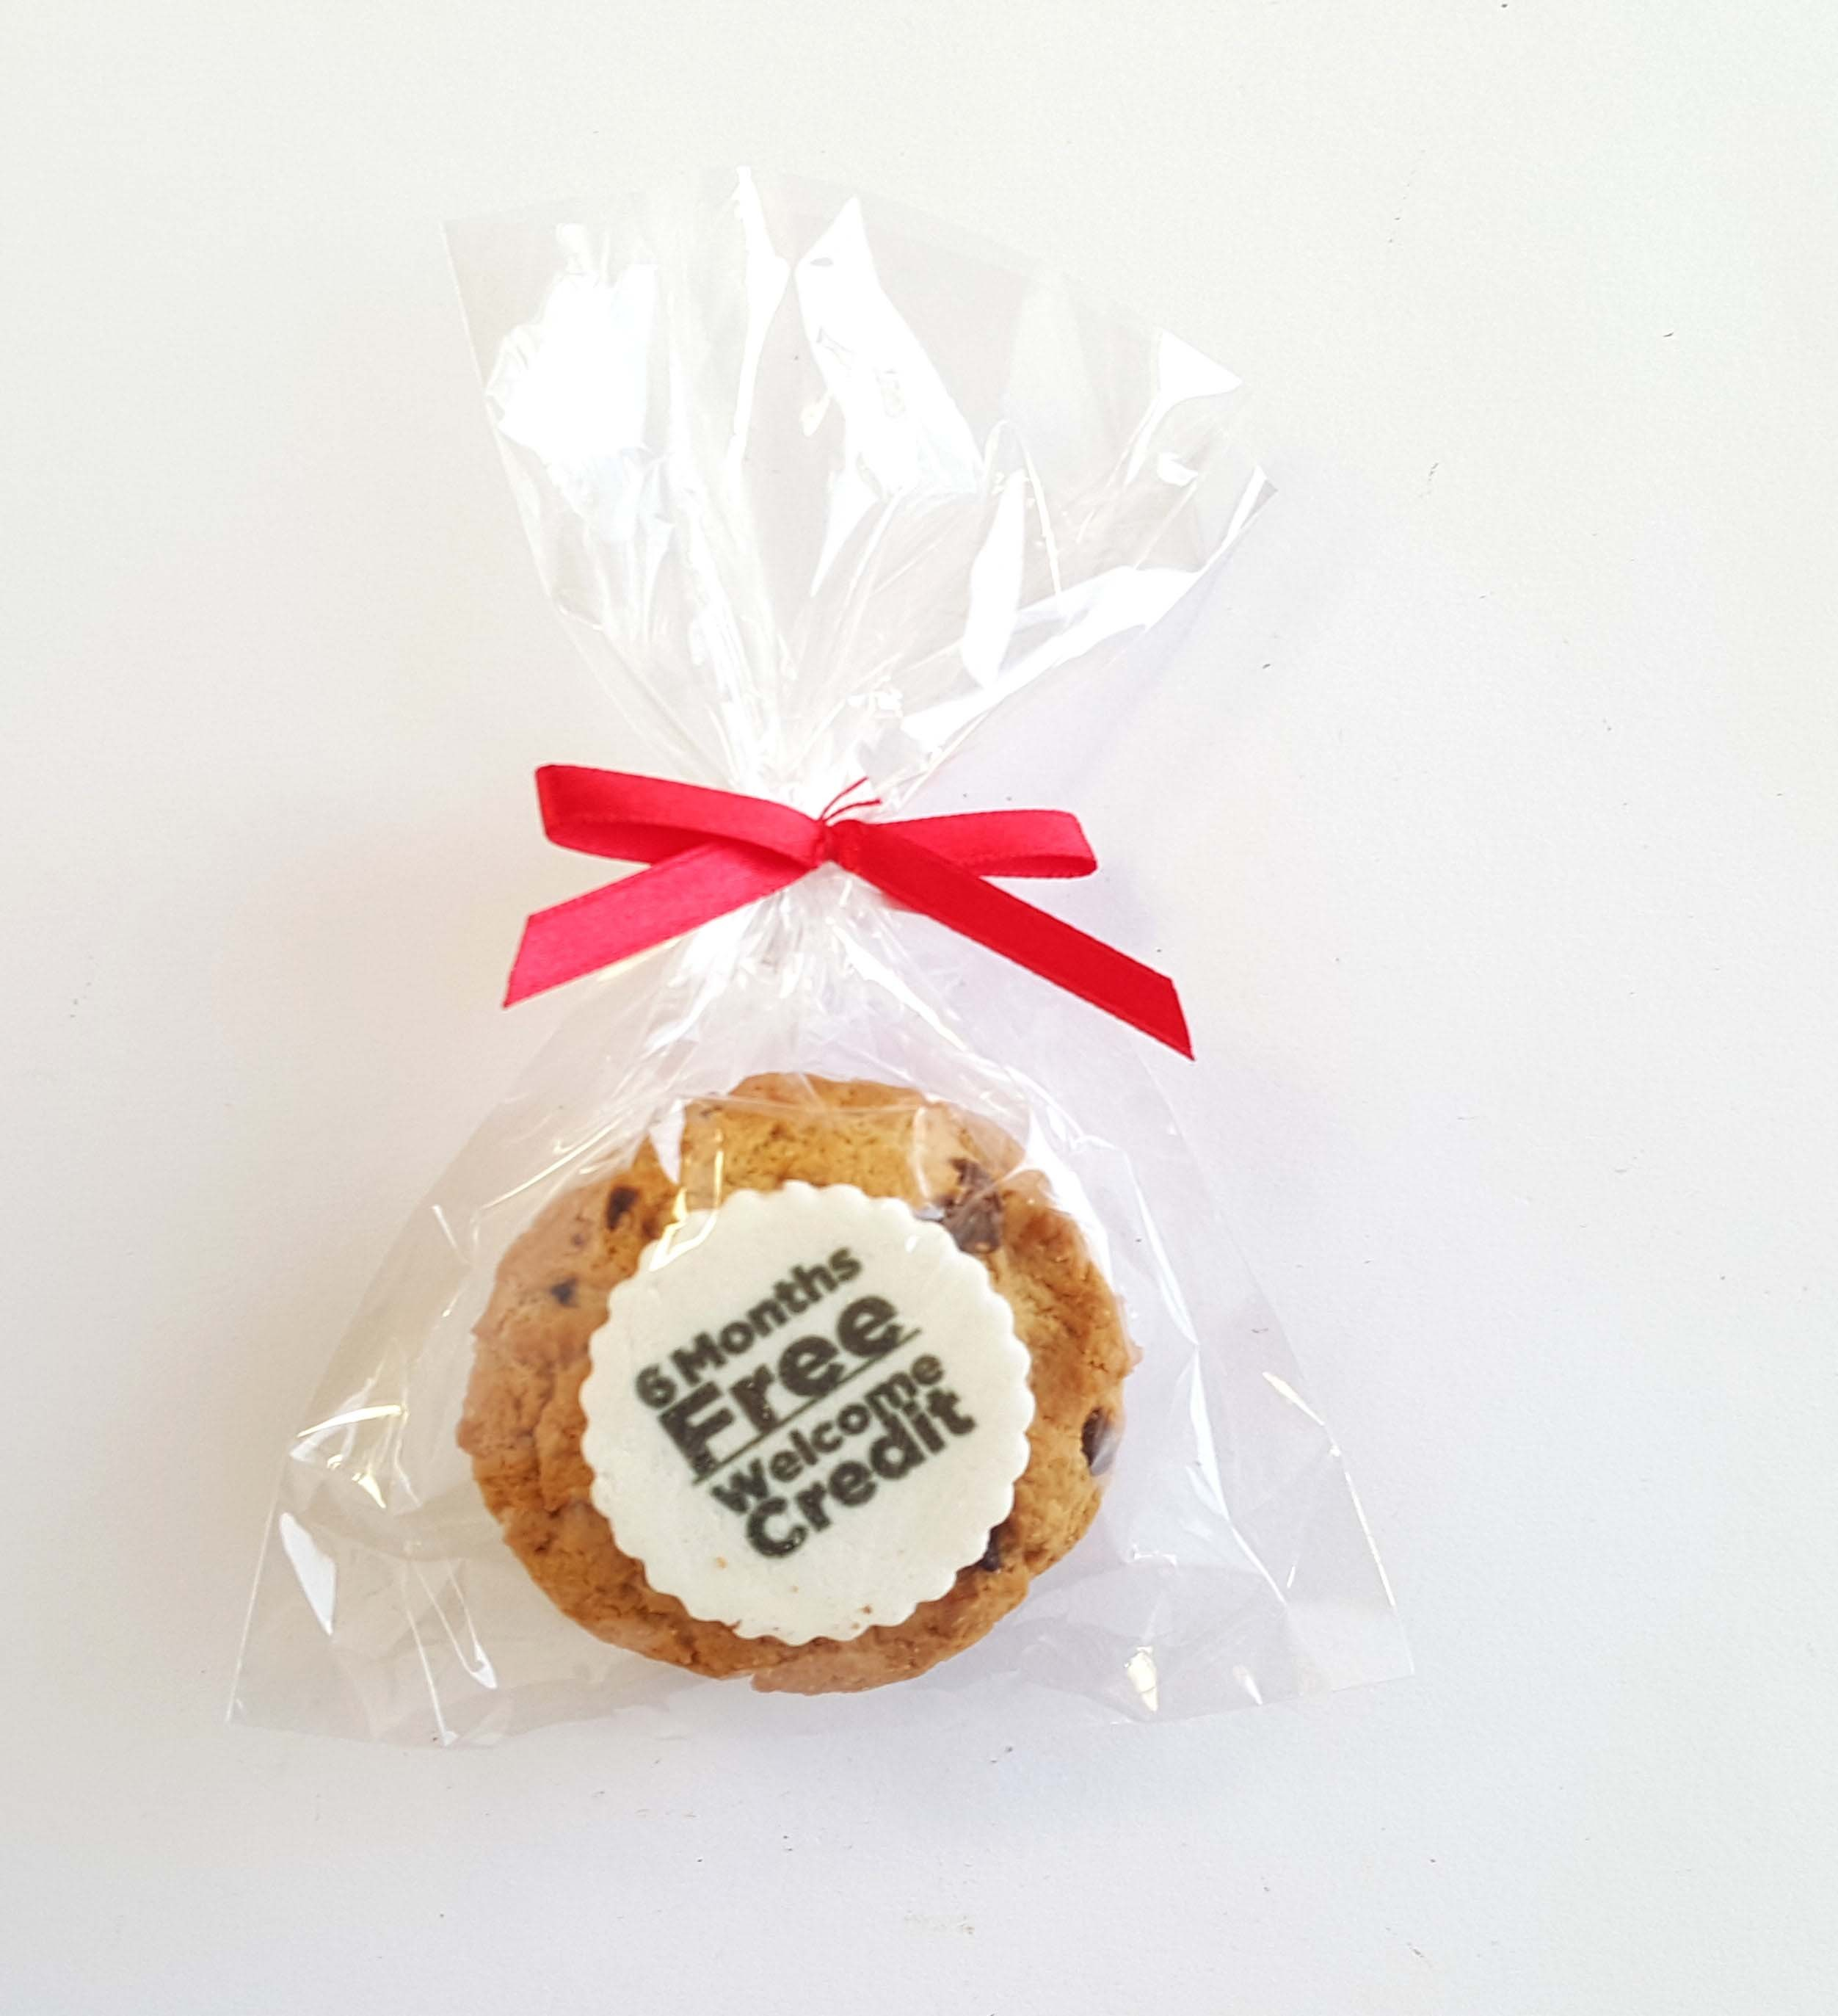 Pack of 2 Printed Cookies with Twist Tie Red Bow Ribbon.